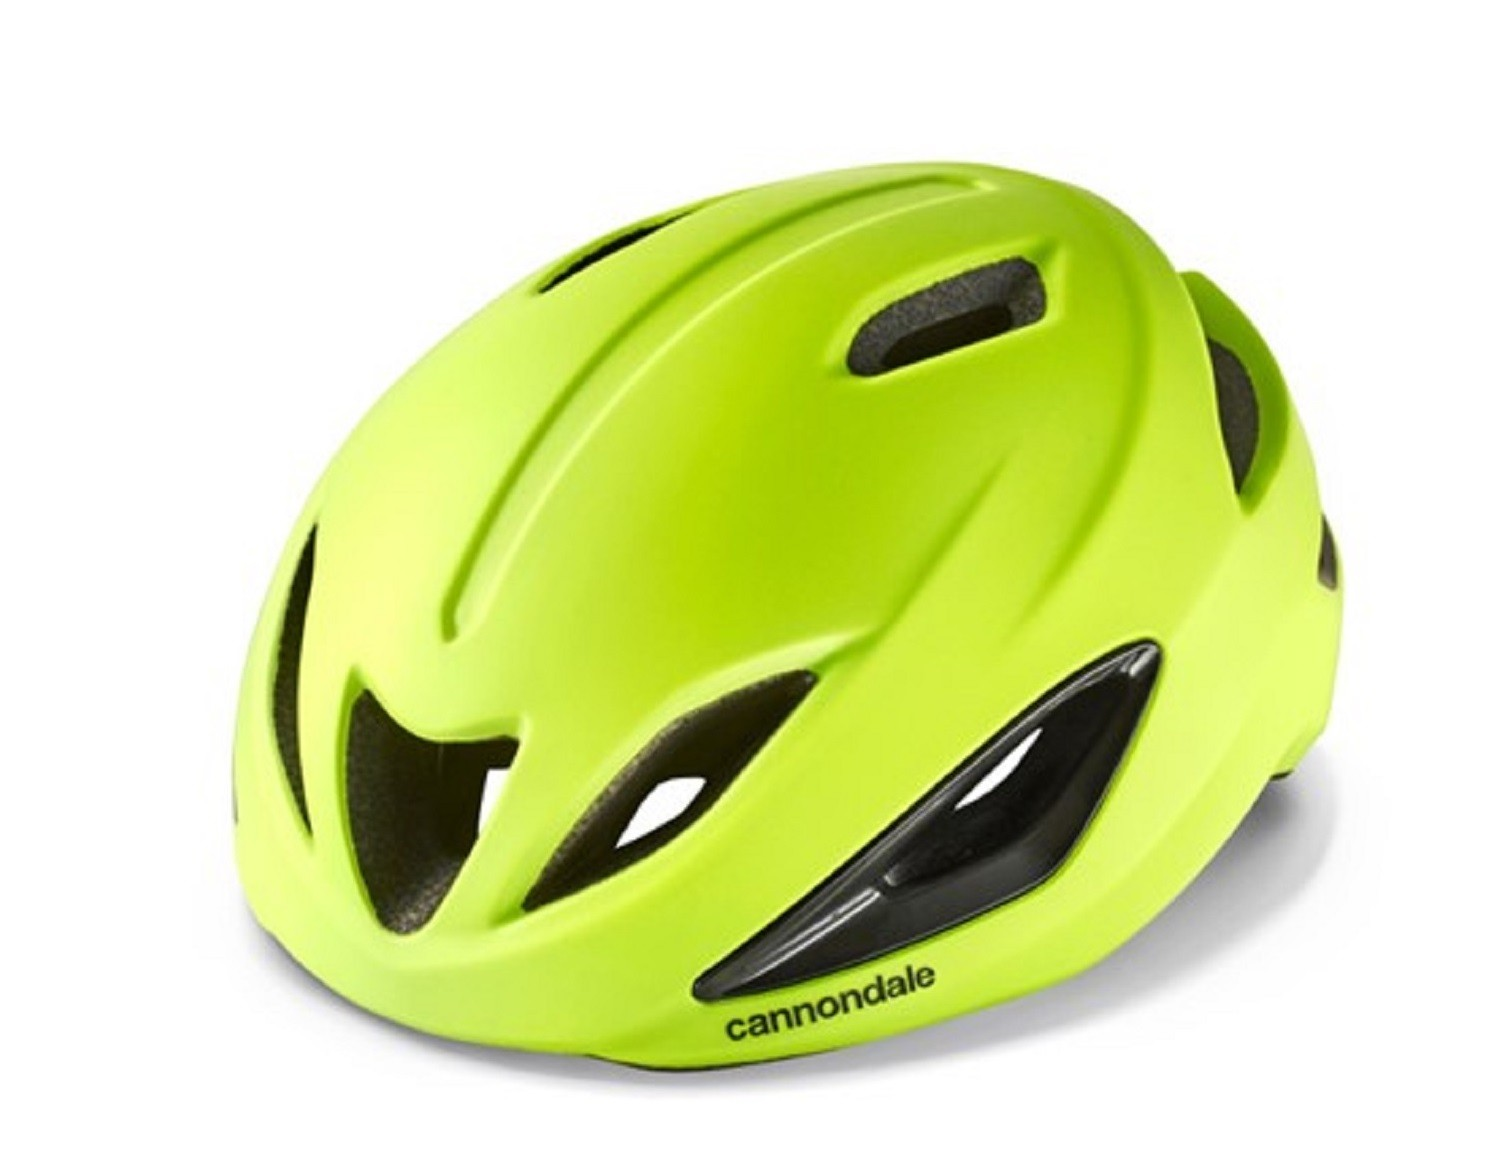 Capacete Cannondale Intake Neon